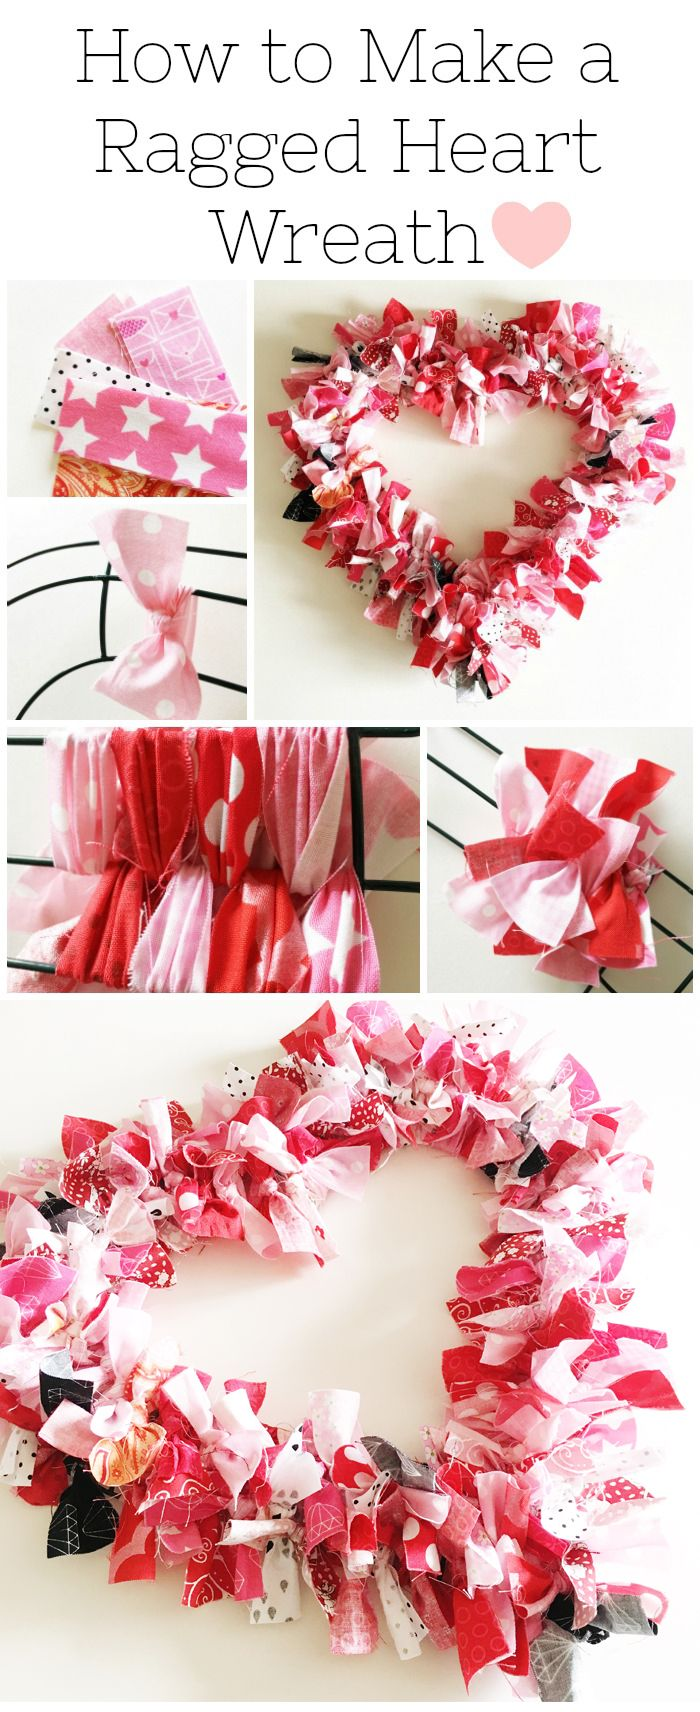 How to make a Valentine's Heart Fabric Rag Wreath- a cute Valentine's Day Craft idea. Rag Wreath Tutorial #ValentinesDayCrafts #DIYWreath #RagWreath #FabricWreathTutorial